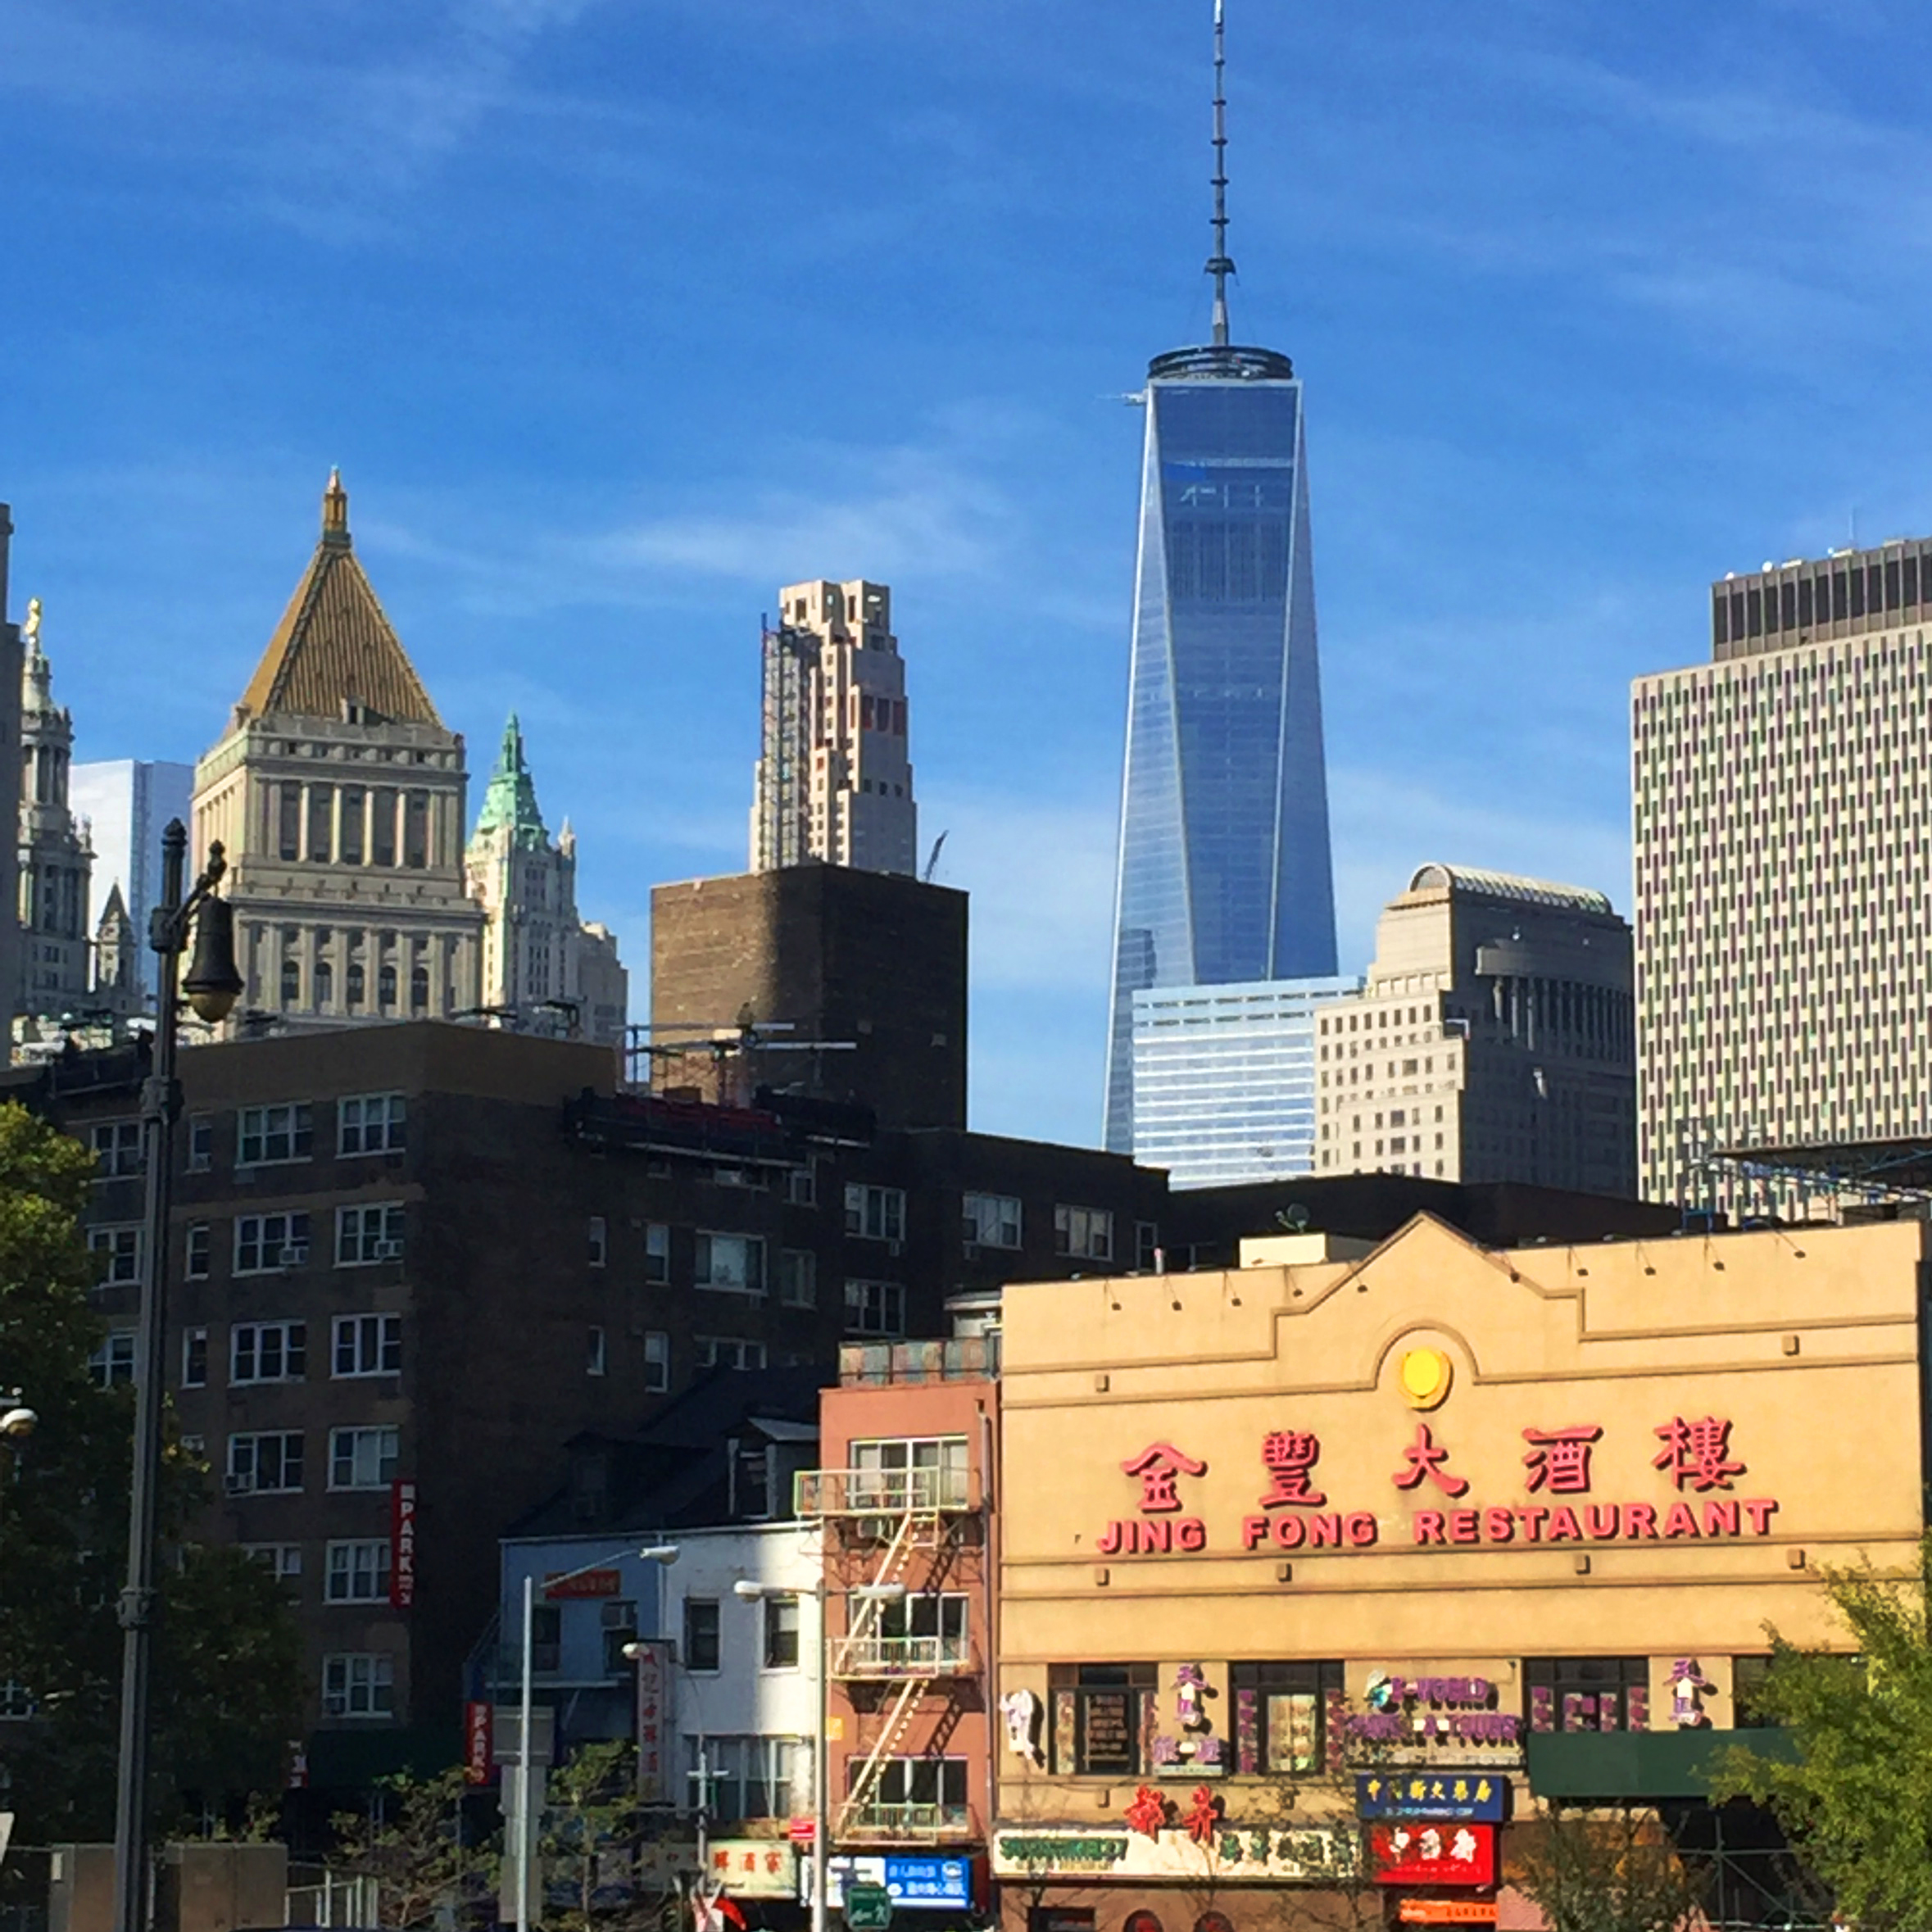 Things To Do in Chinatown NYC on a $30 Budget ⋆ Full Time ...